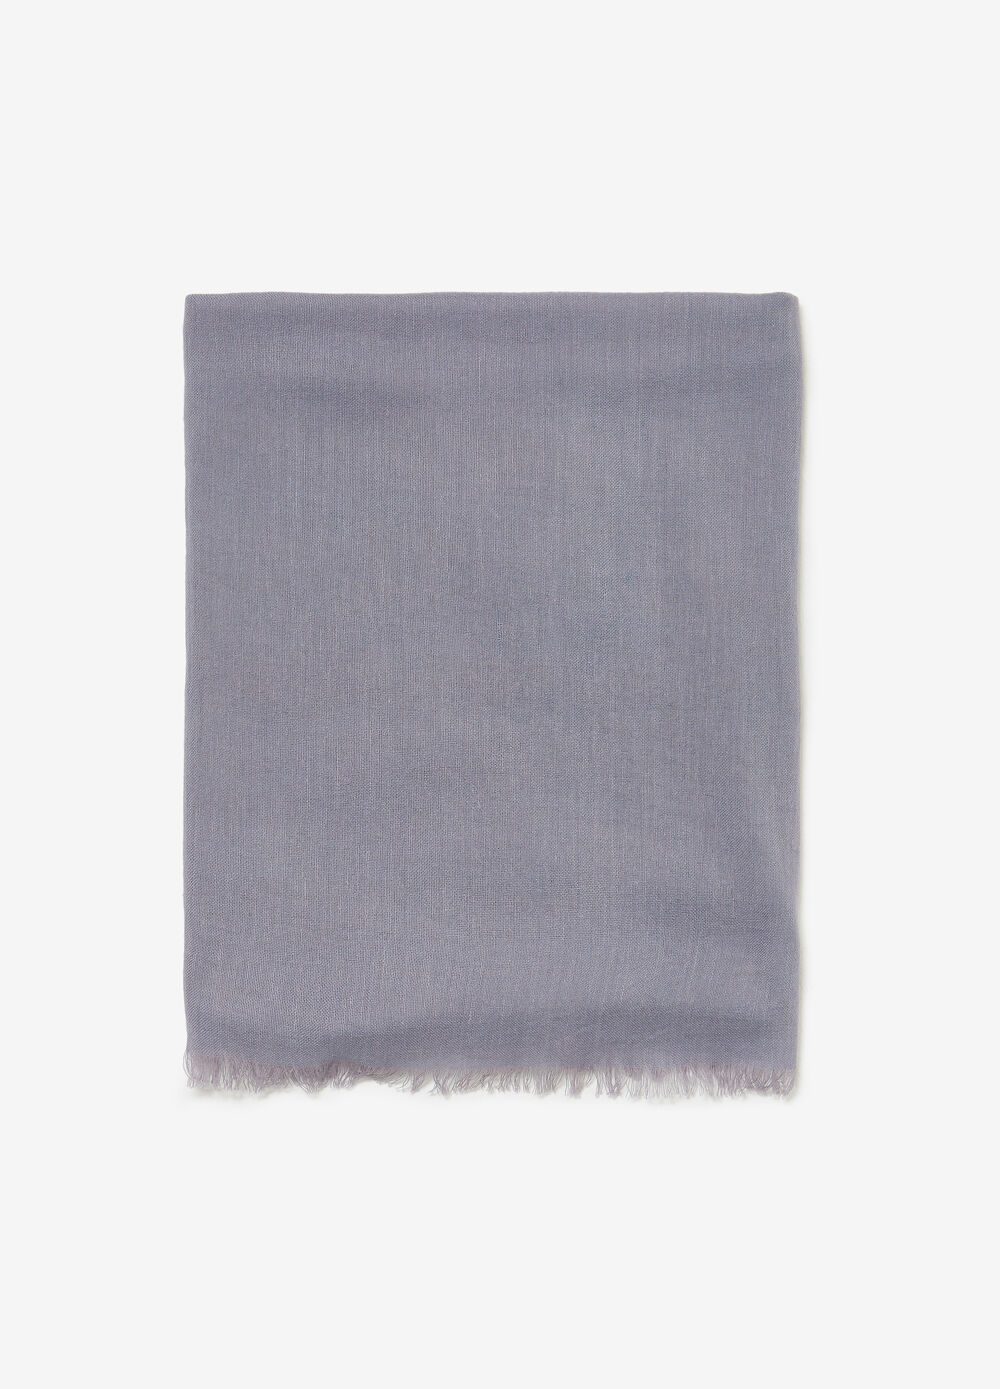 Solid colour cotton and viscose pashmina